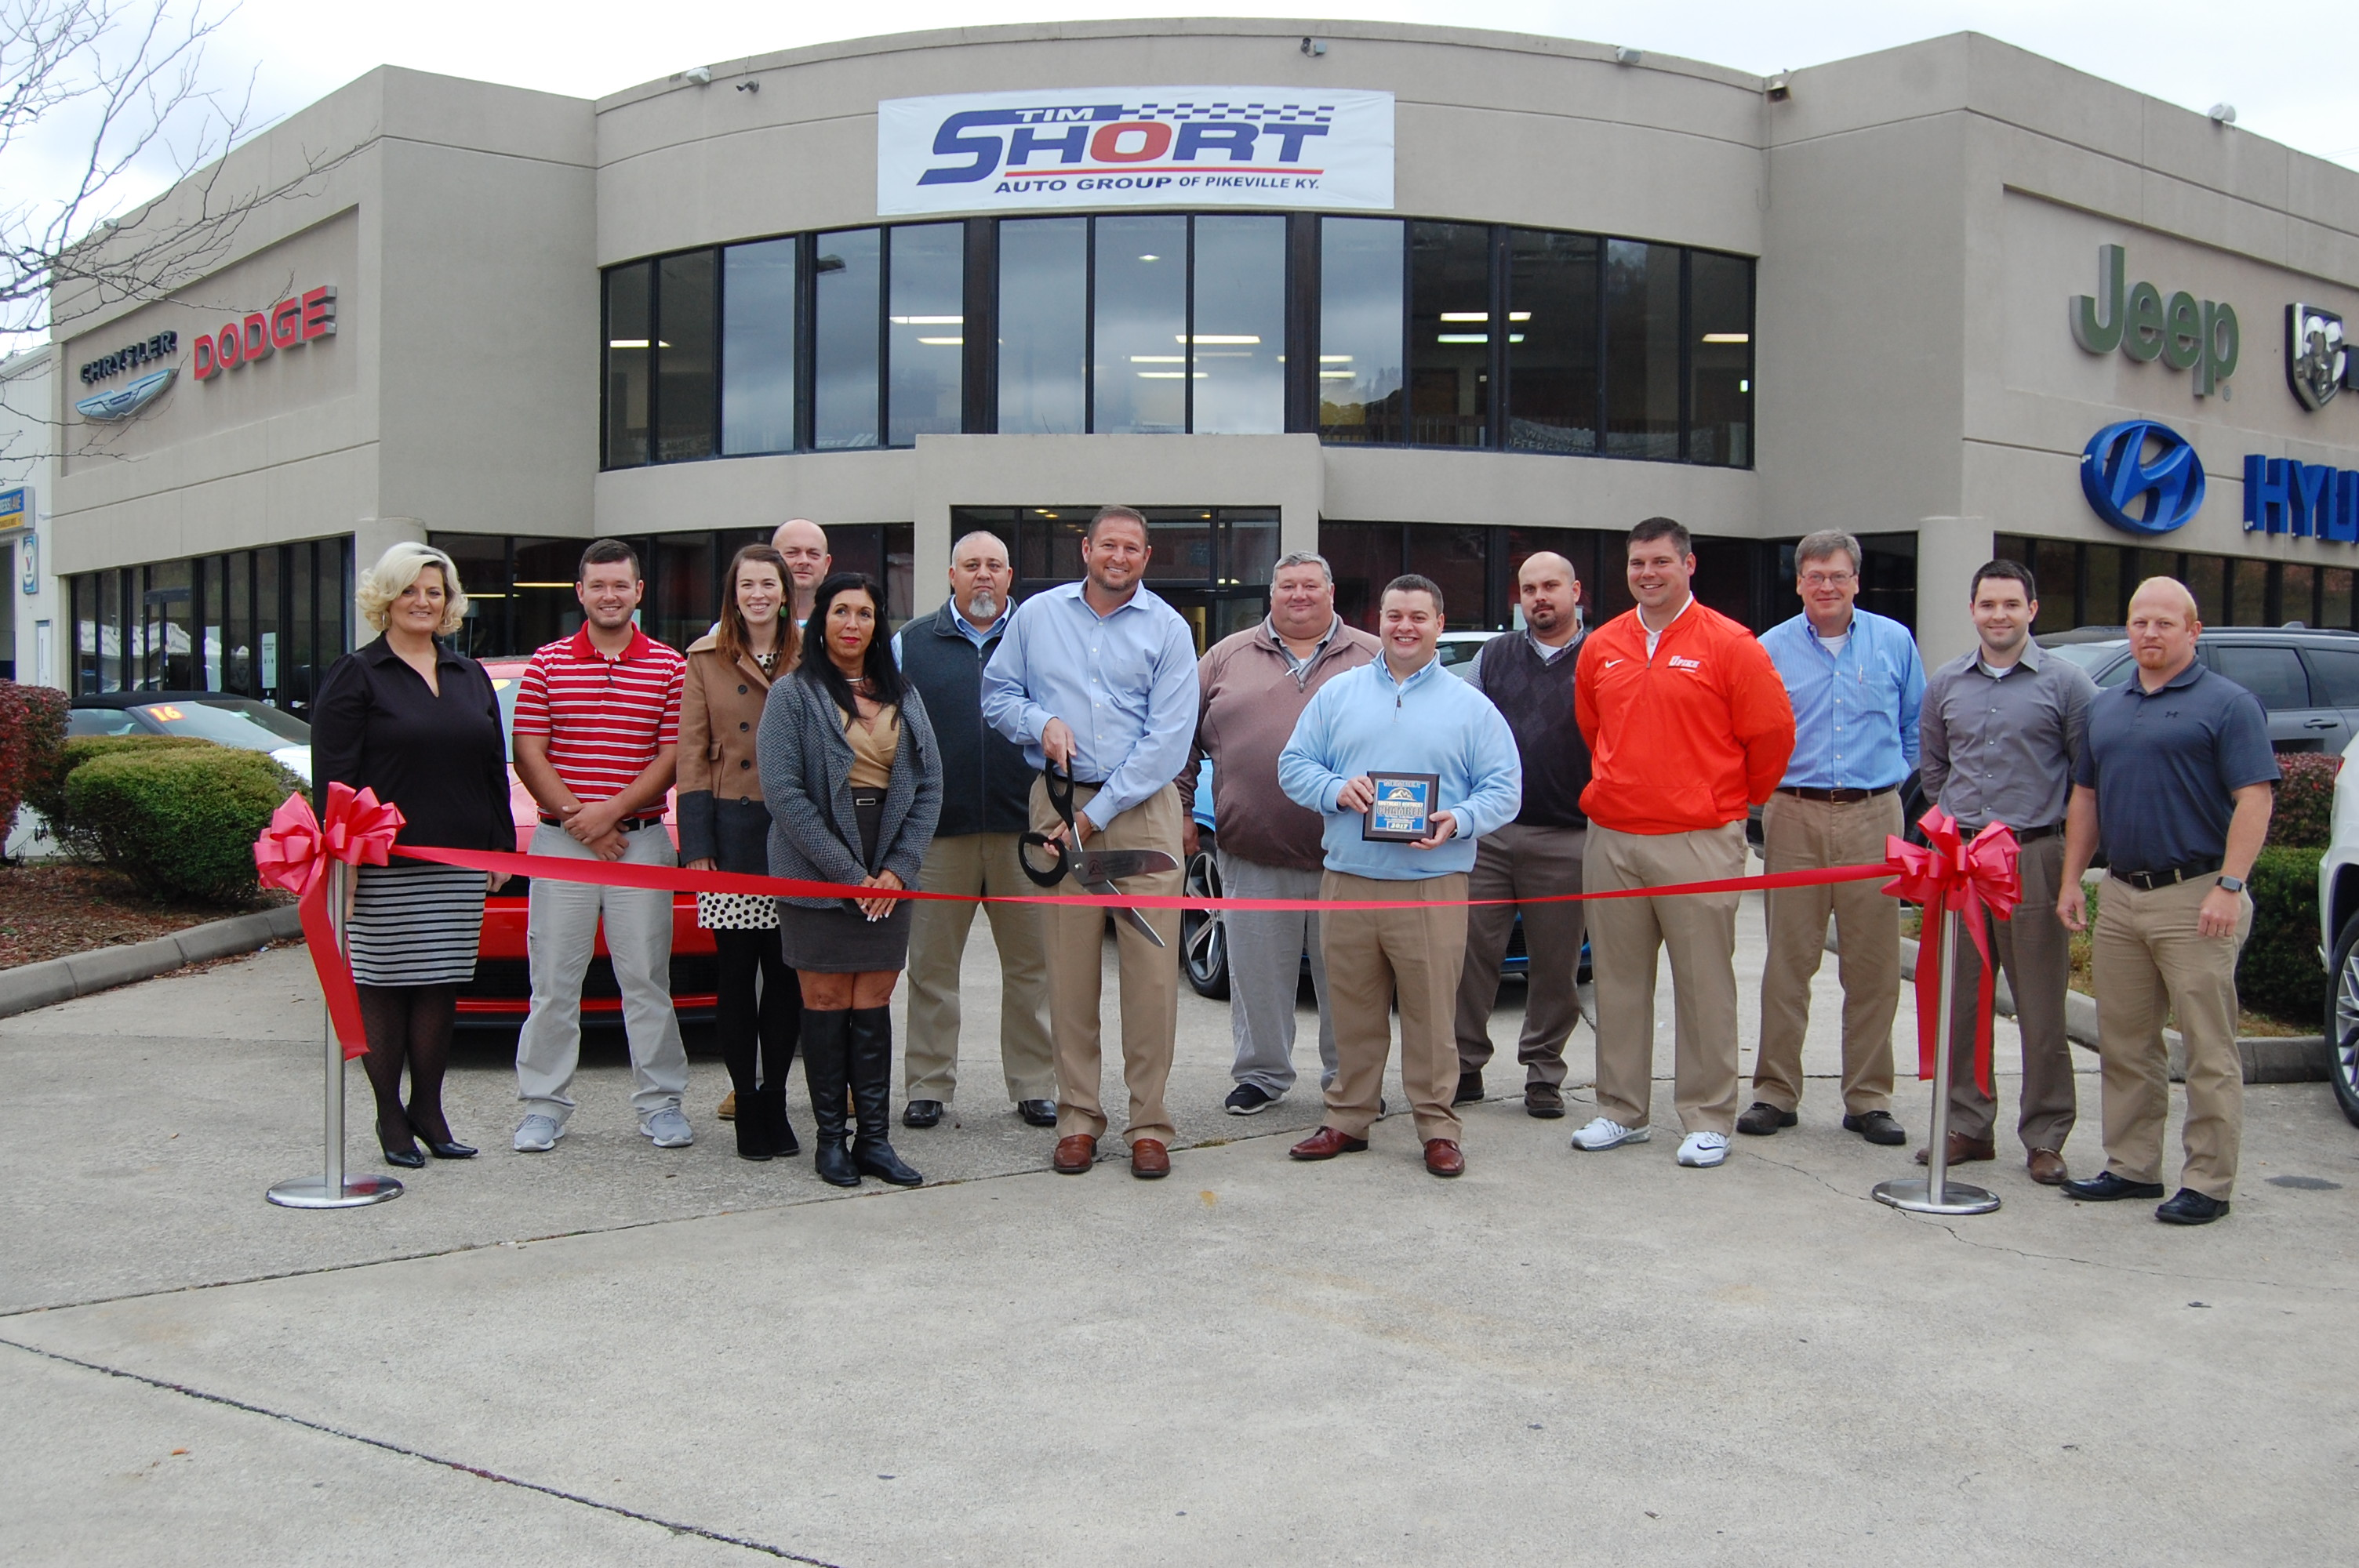 Tim Short Chrysler >> Welcome Tim Short Auto Group - Southeast Kentucky Chamber of Commerce   Pikevill, KY